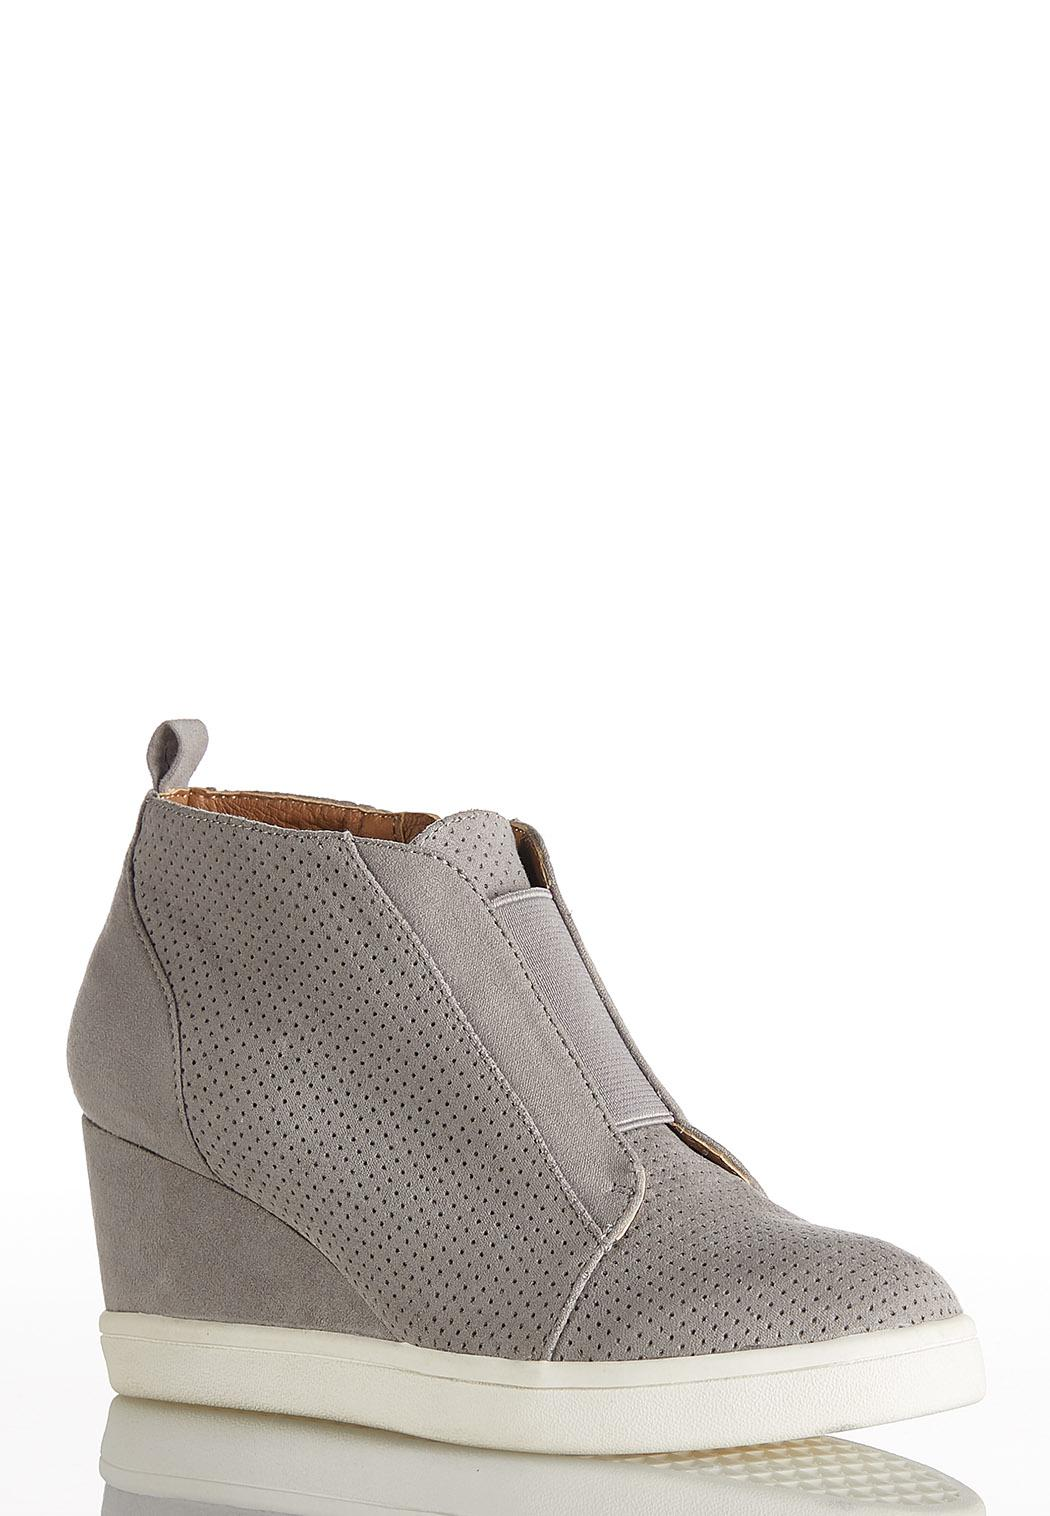 d55e135551e26 Perforated Wedge Sneakers